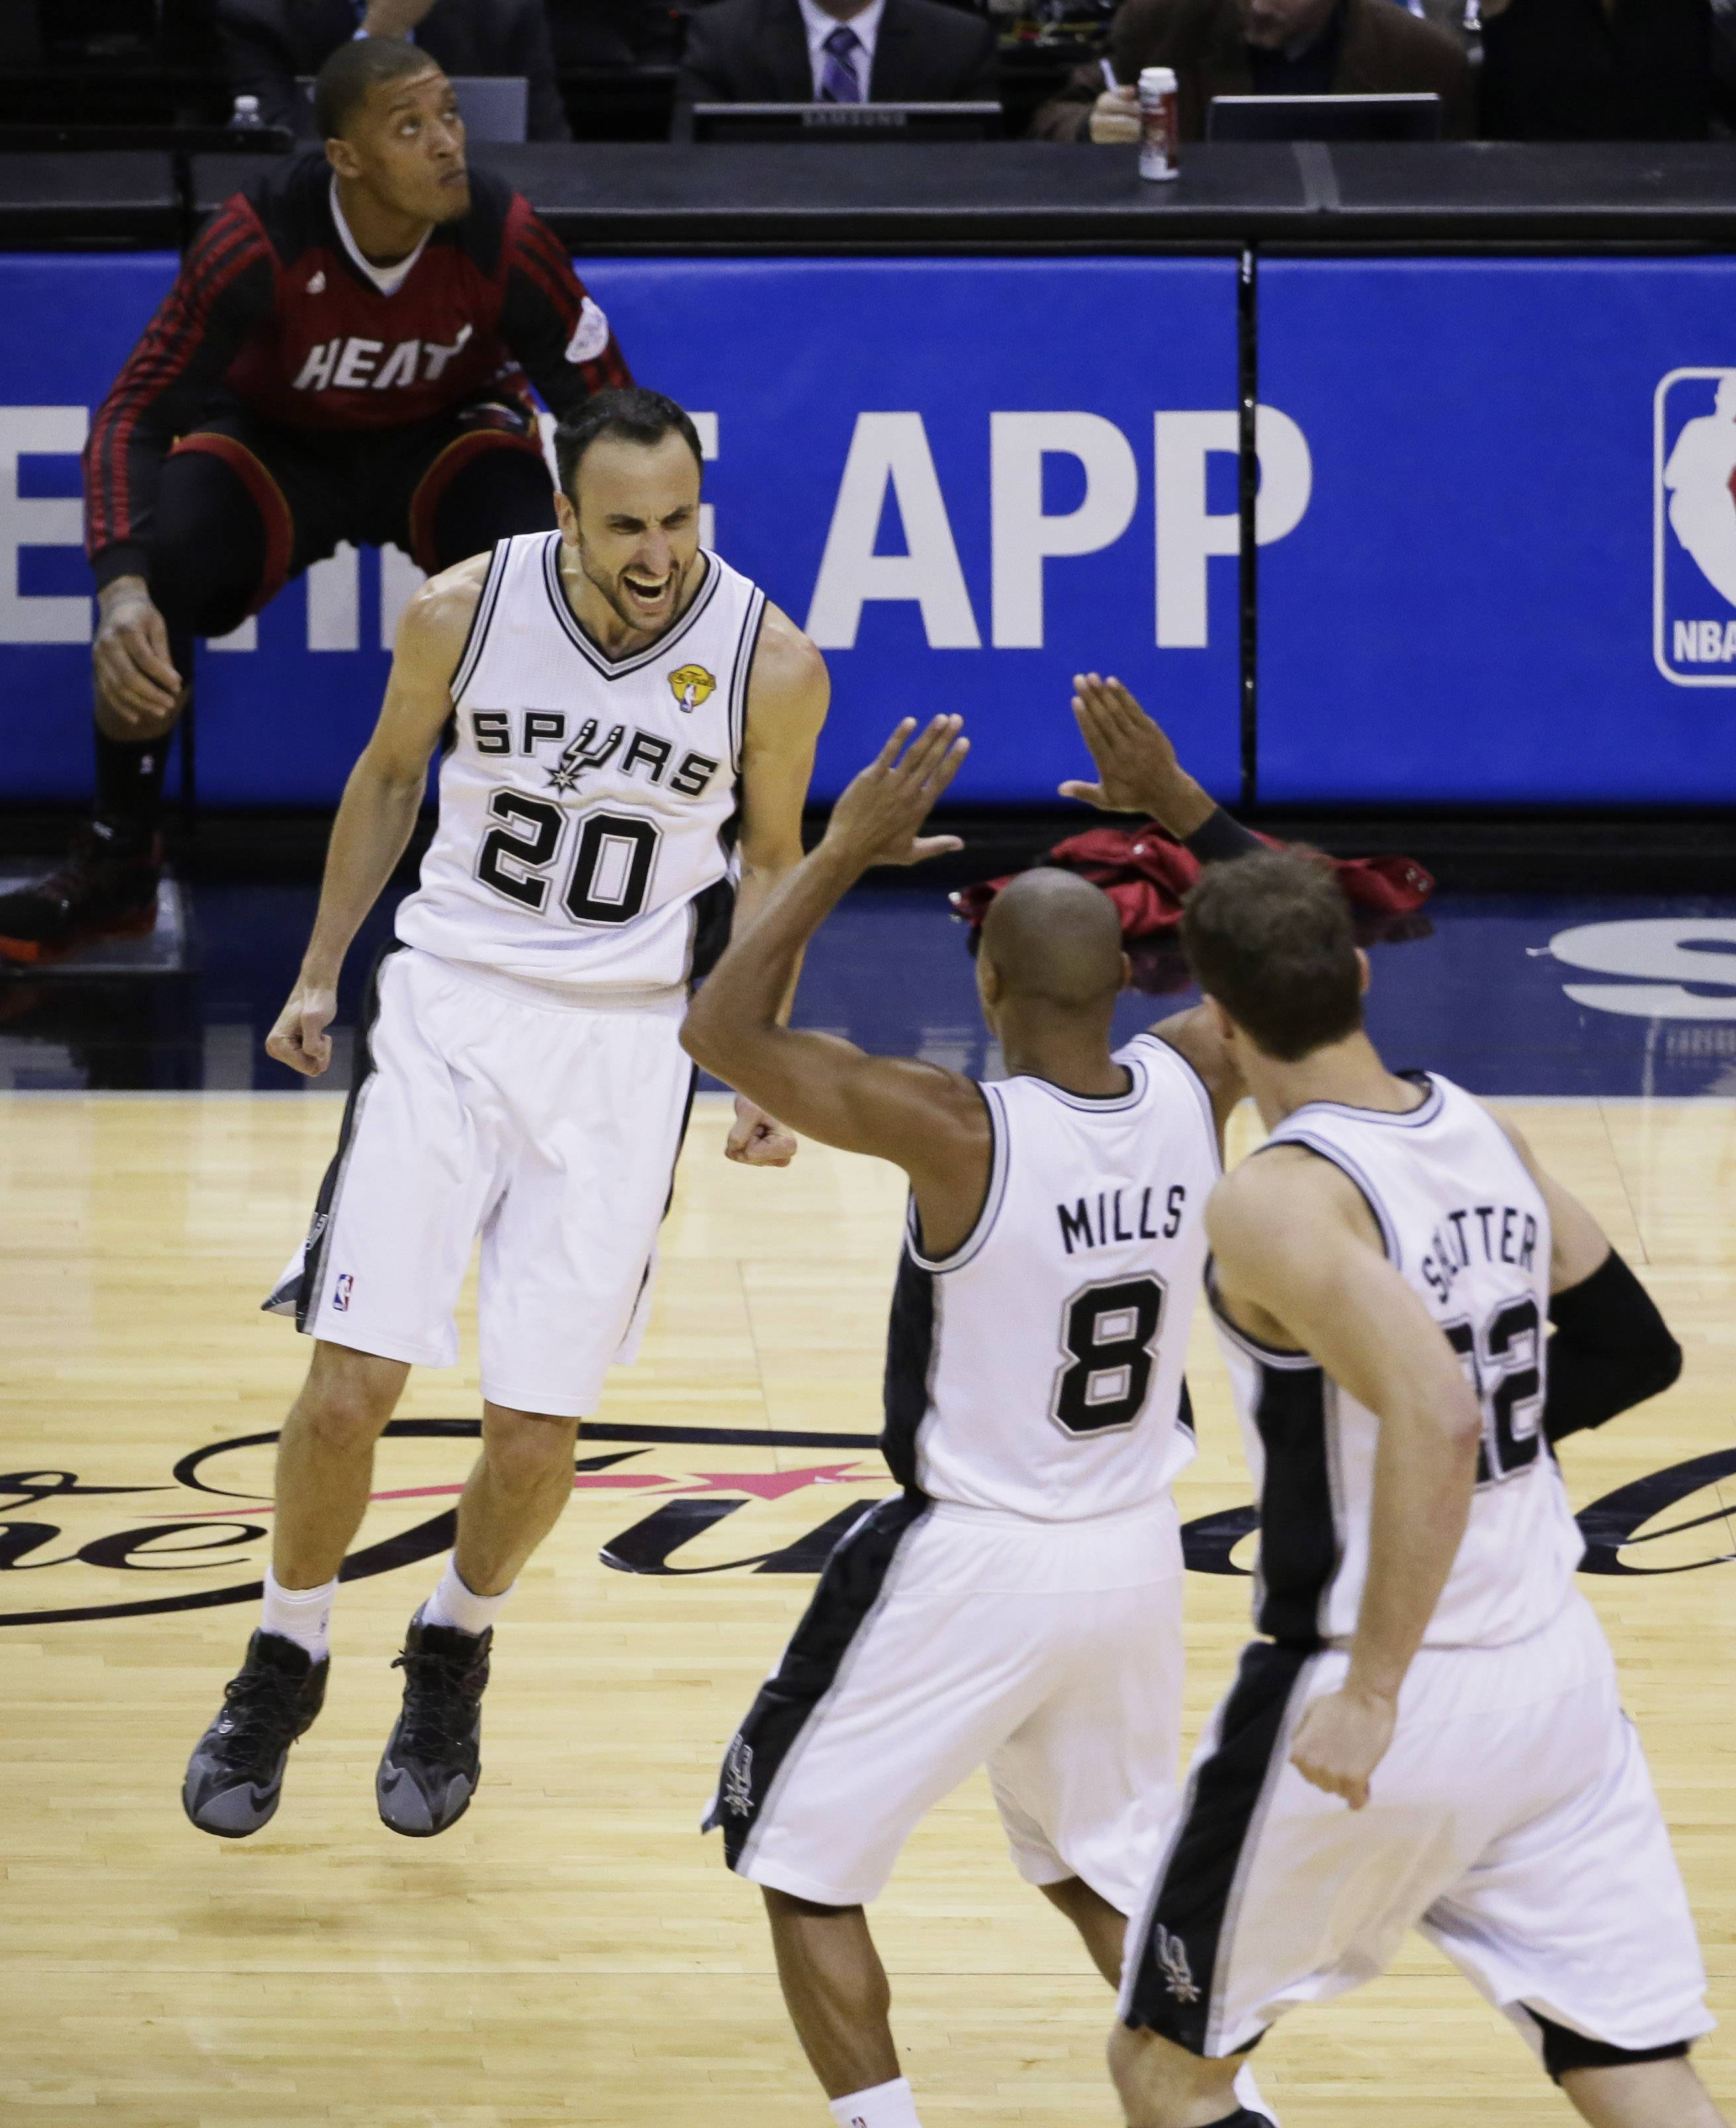 San Antonio Spurs guard Manu Ginobili (20), guard Patty Mills (8) and center Tiago Splitter (22) celebrate against the Miami Heat during the second half in Game 5 of the NBA basketball finals on Sunday, June 15, 2014, in San Antonio.